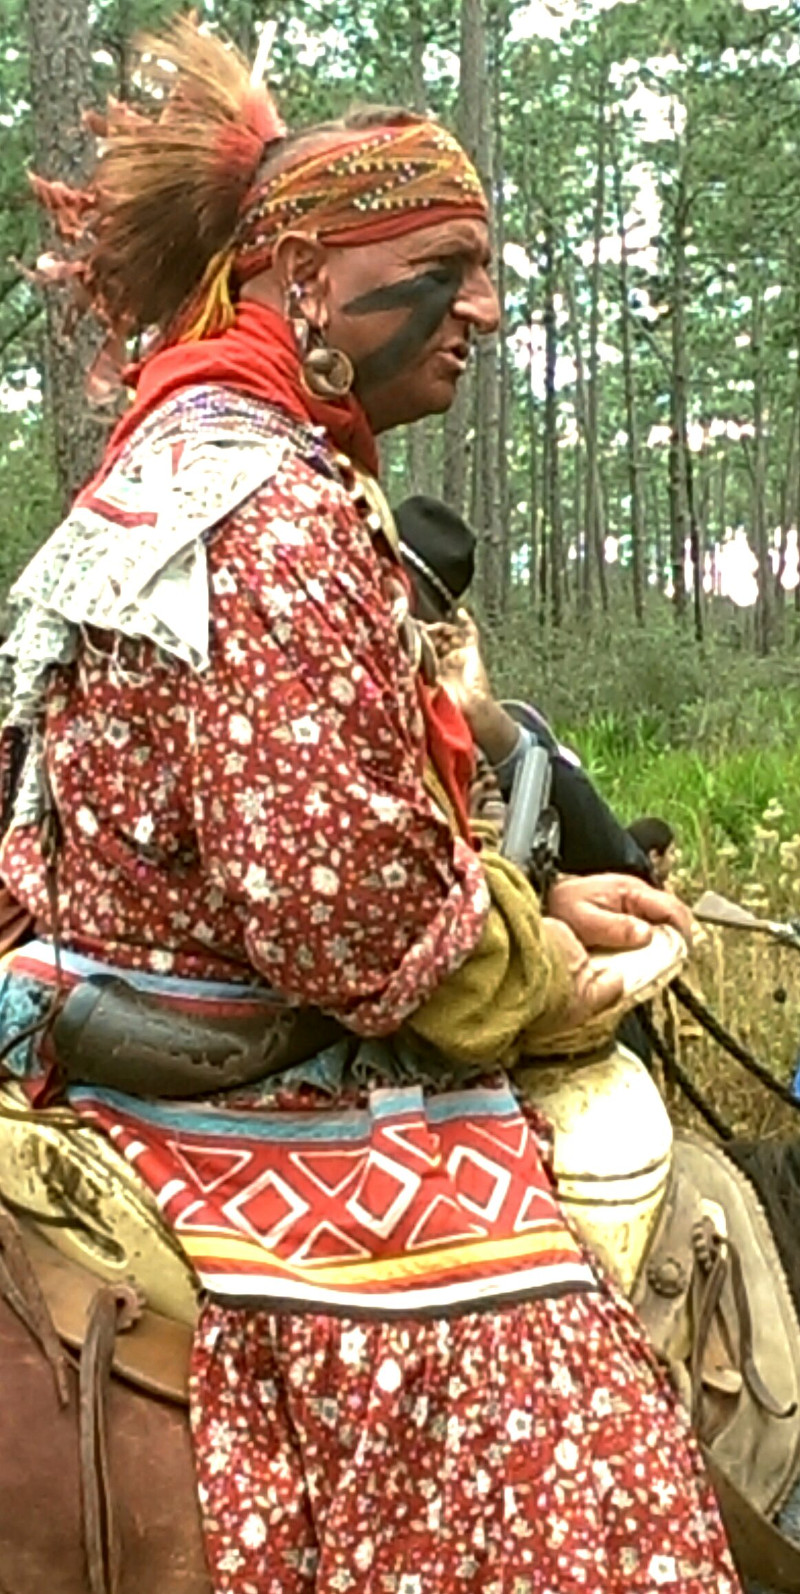 a seminole warrior reenactor in a colorful outfit rides a horse.